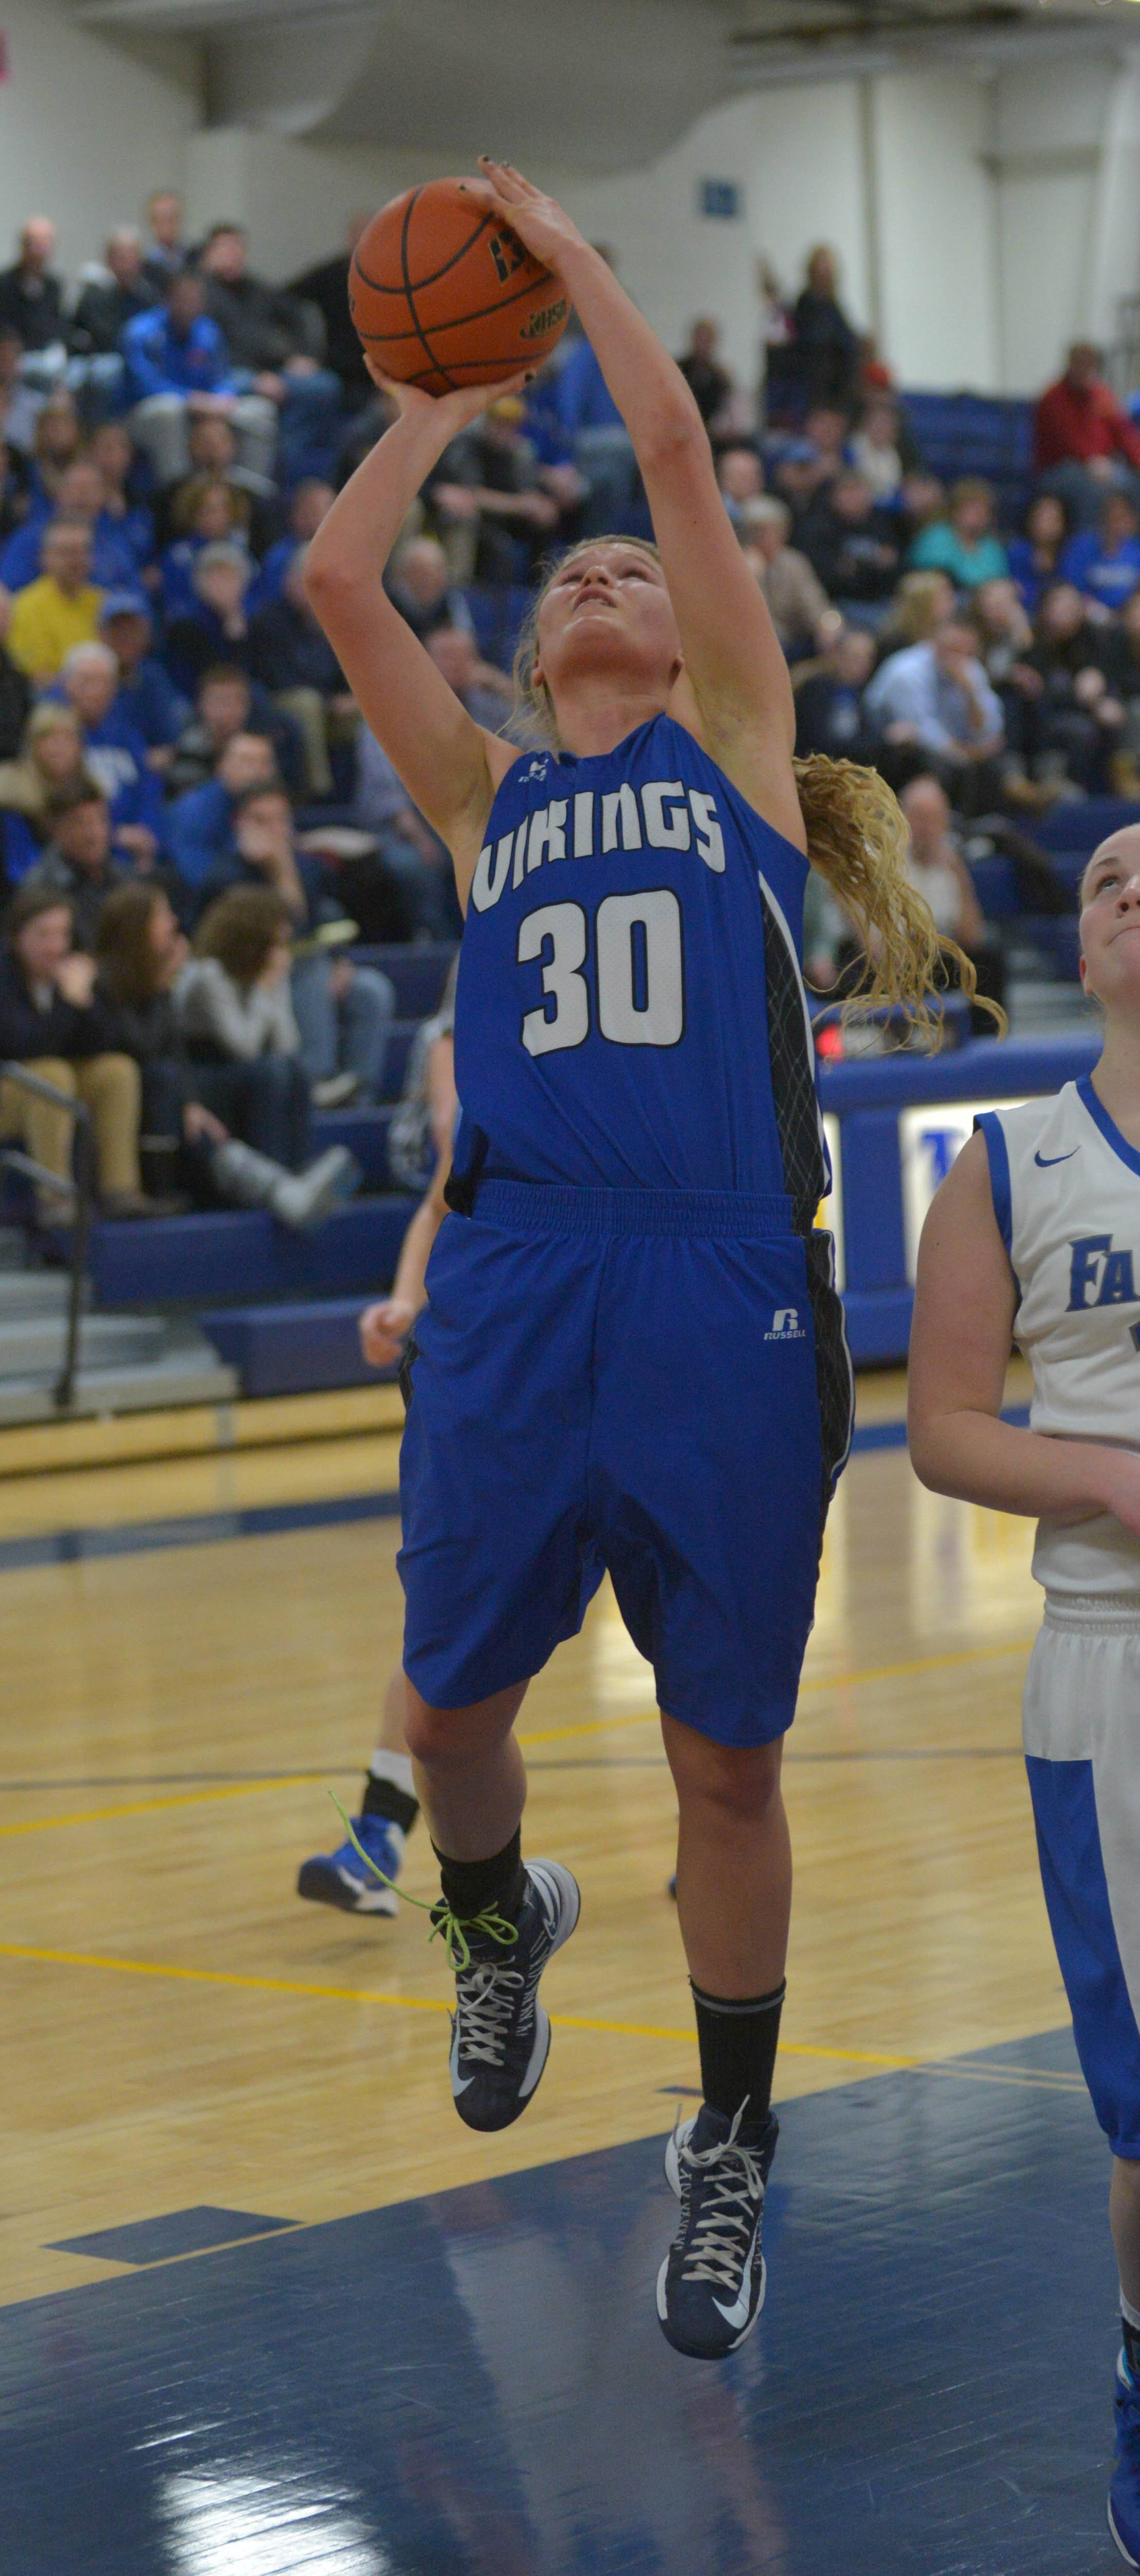 Janie McCloughan of Geneva takes a shot during the Geneva at Wheaton North girls basketball regional final Thursday.